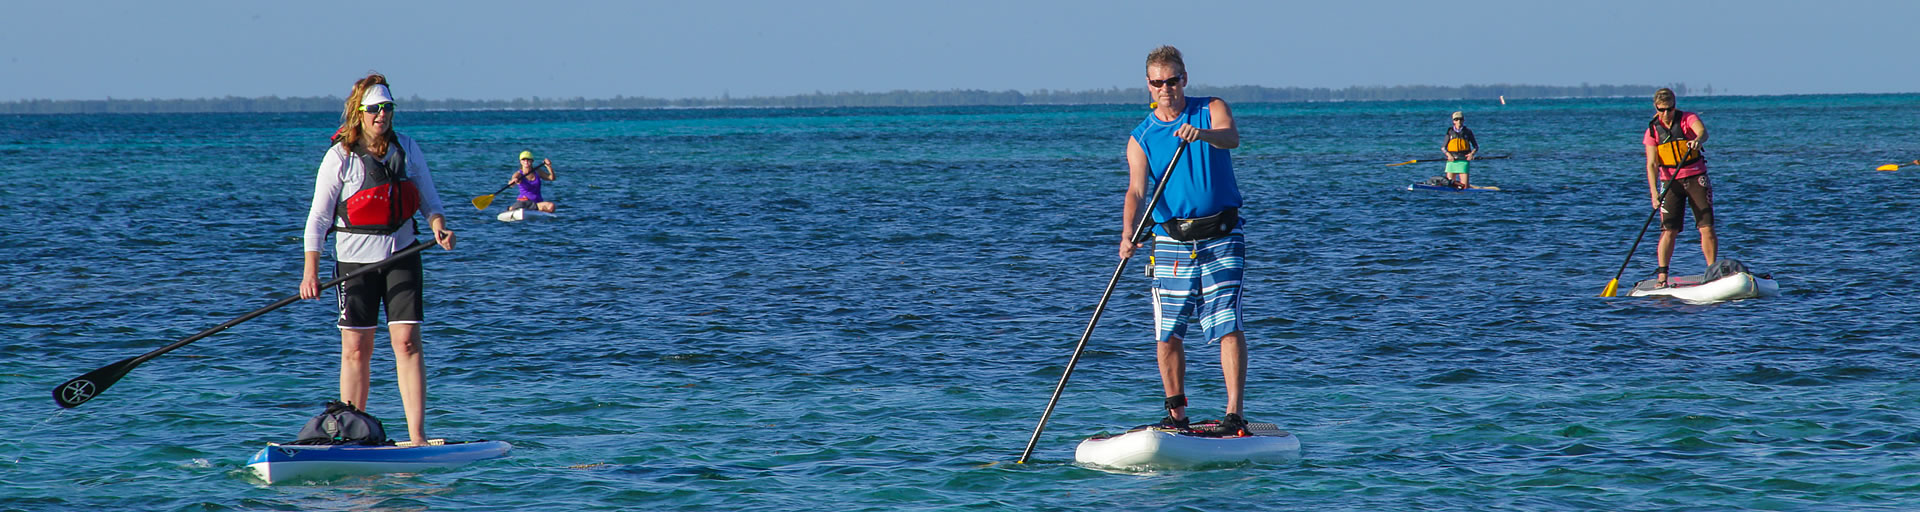 Stand Up Paddleboard (SUP) along Belize Barrier Reef